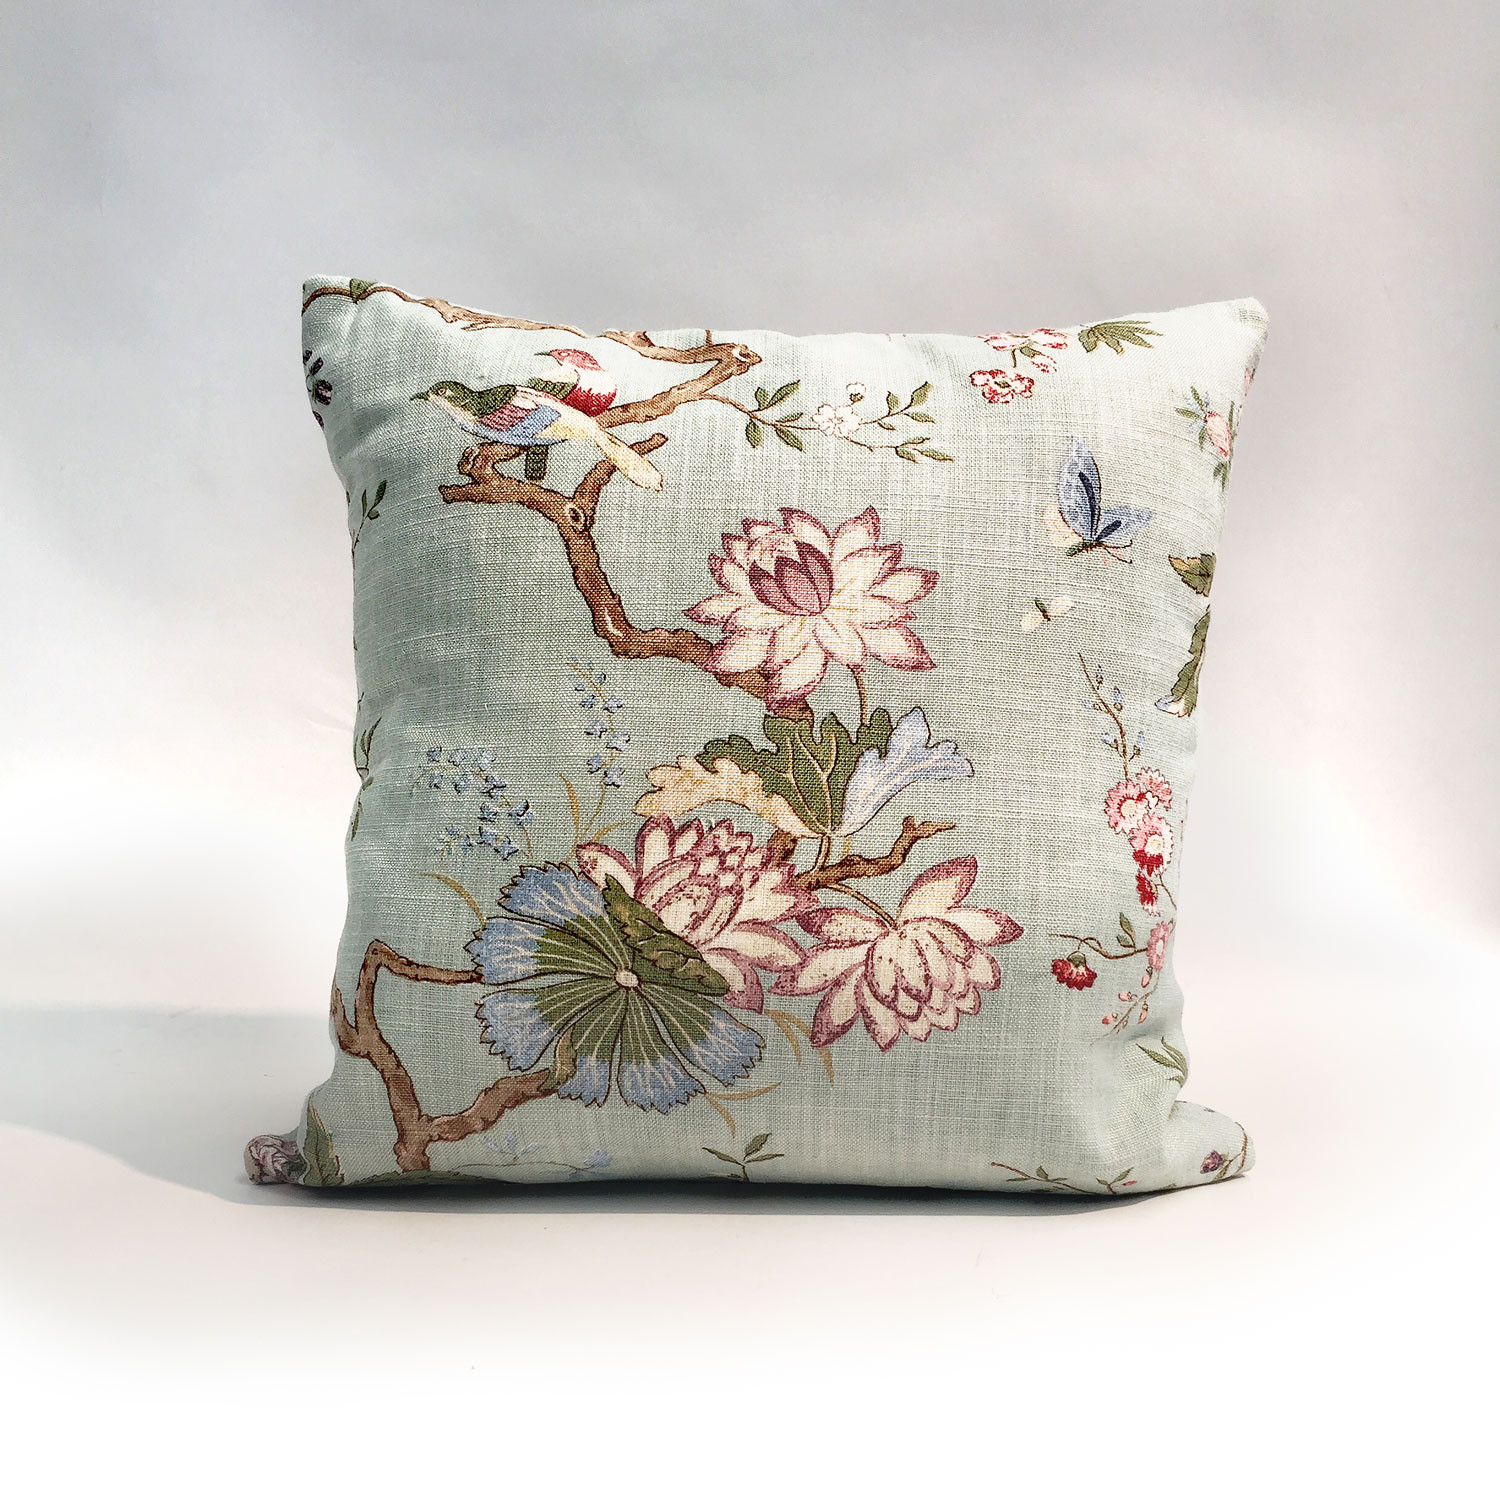 Cushion with motif of flowers, birds, butterflies